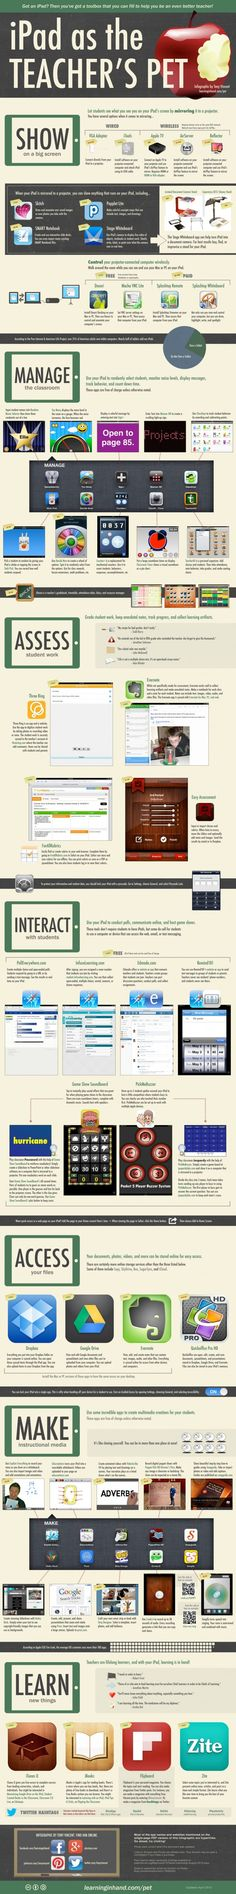 The iPad as the Teacher's Pet Infographic